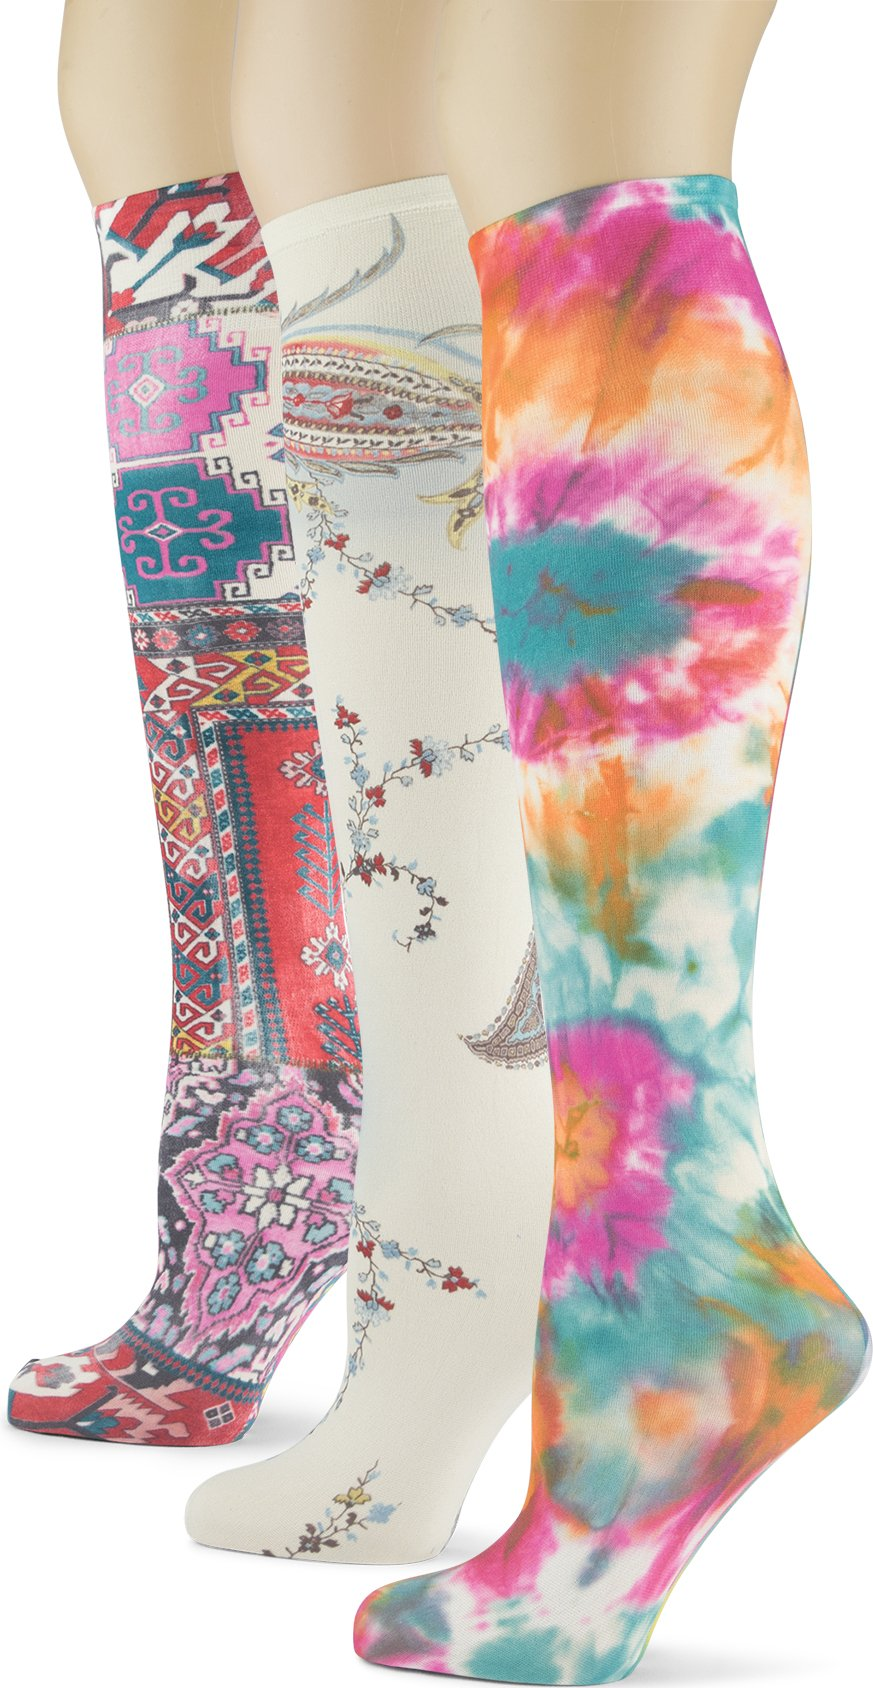 Knee High Trouser Socks w/Colorful Printed Patterns - Made in USA by Sox Trot (3 Rich Jewels)